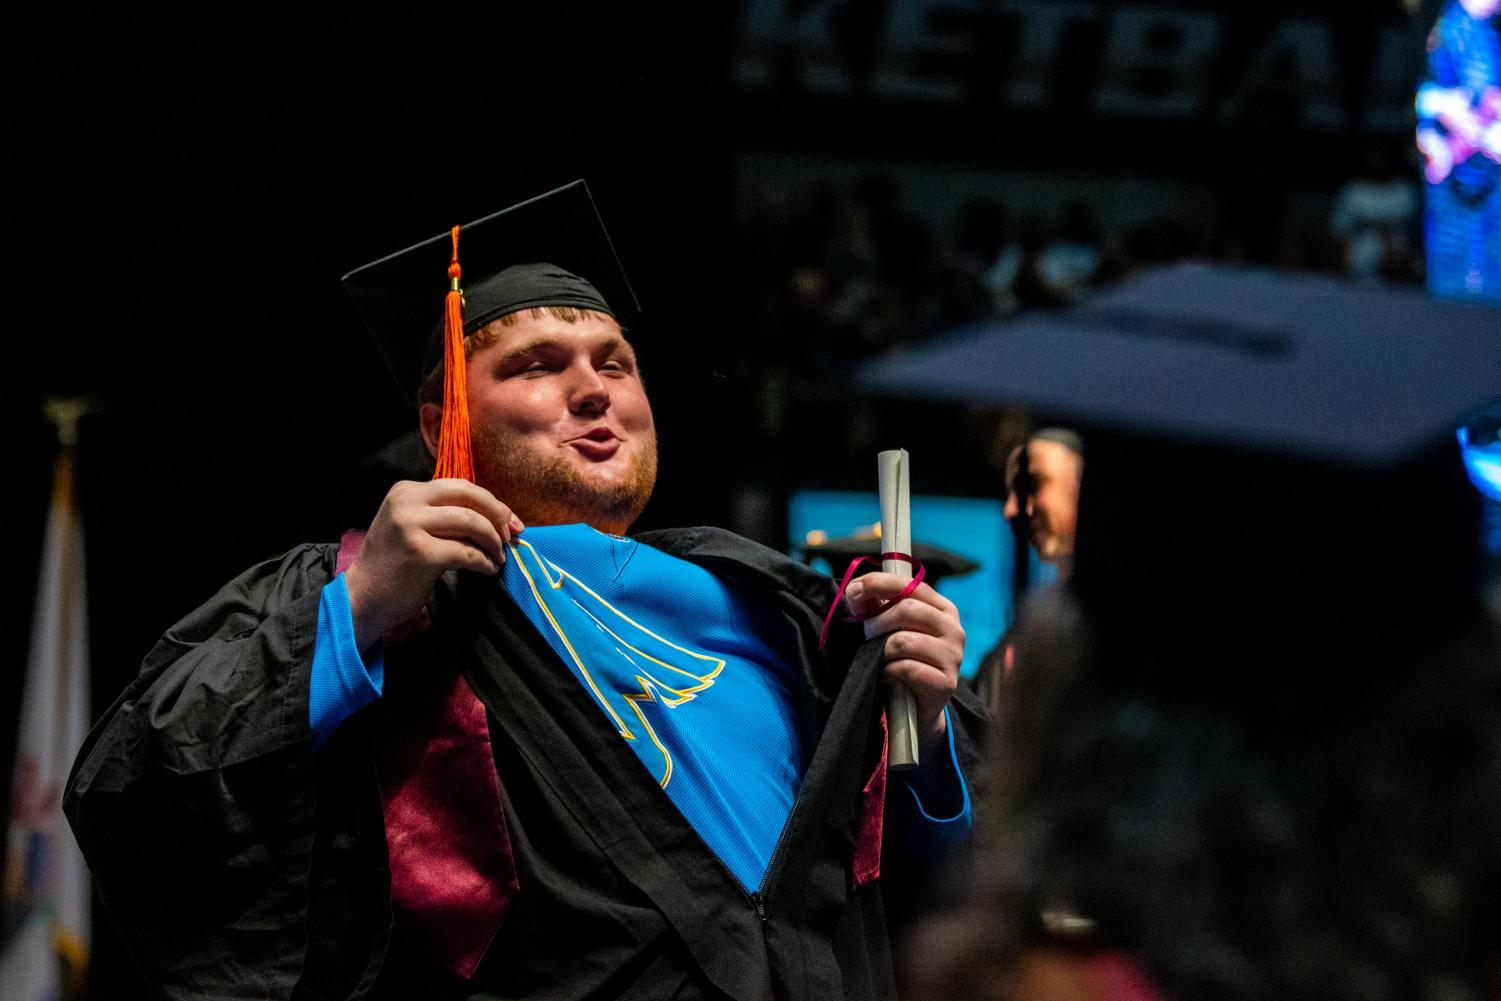 %22Let%27s+go+Blues%22+says+Zachary+Bormida+after+receiving+his+diploma+on+Saturday%2C+May+11%2C+2019+during+the+2019+commencement+inside+the+SIU+Arena.+Bormida+graduated+with+a+bachelors+in+Automotive+Technology